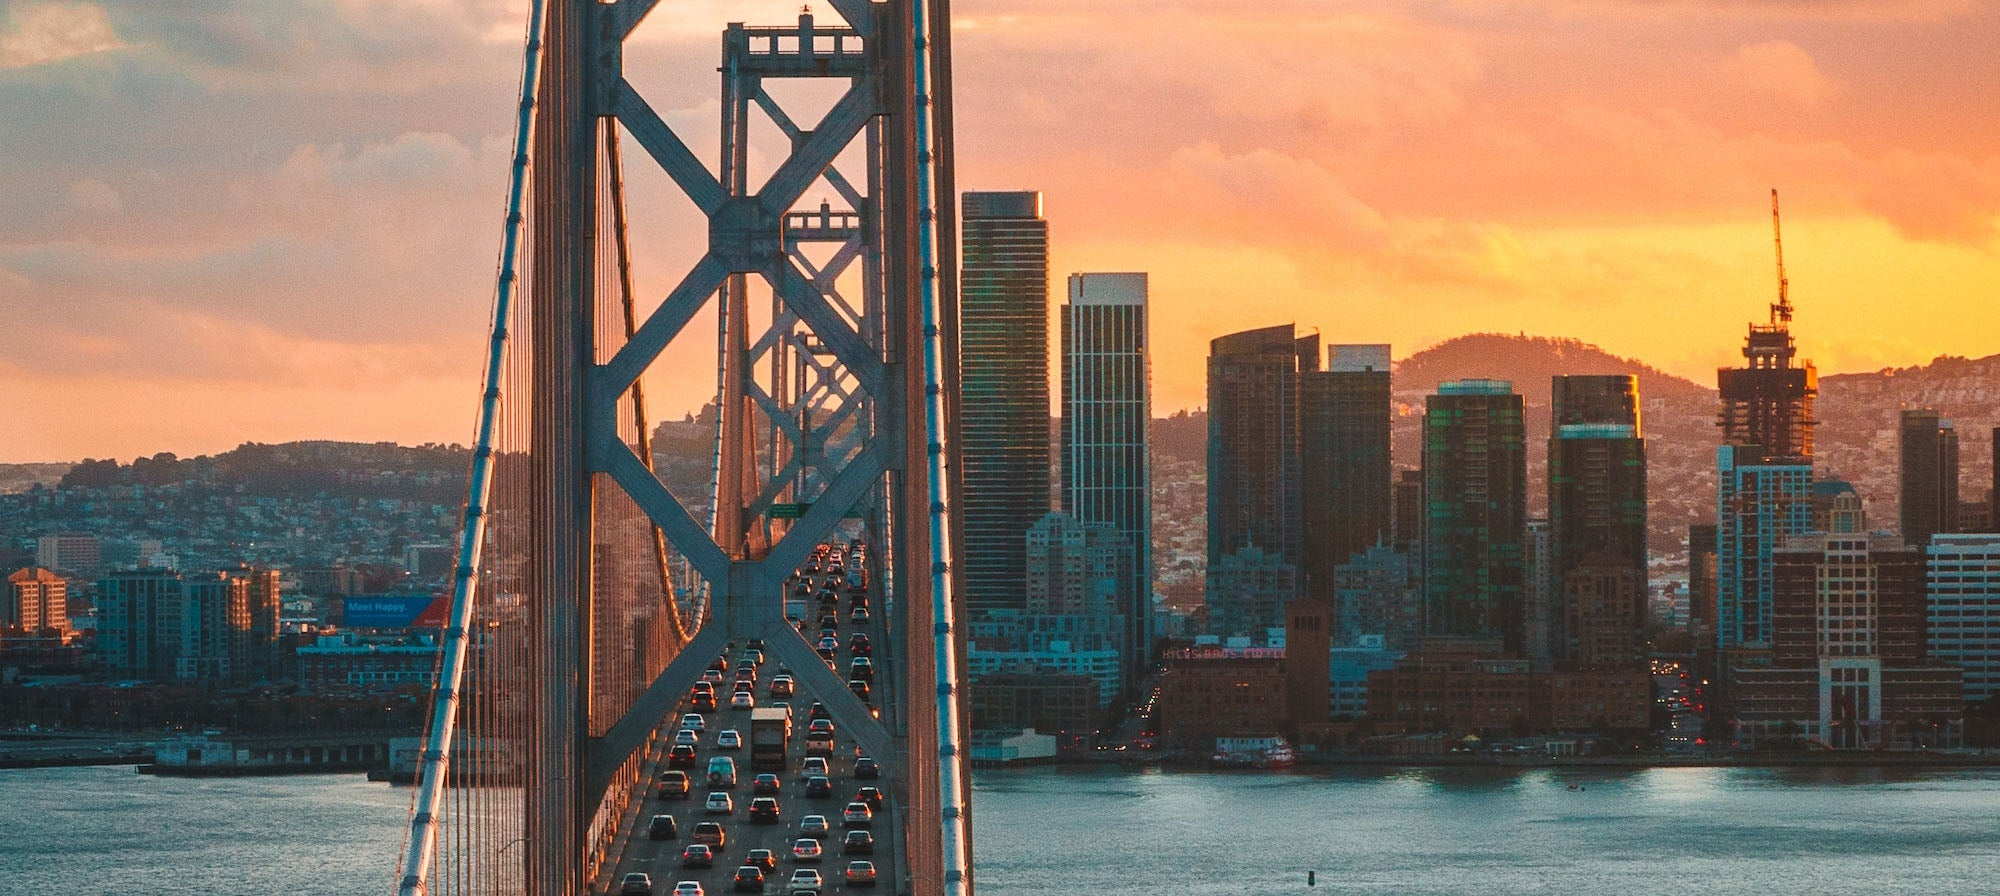 The sun sets in the background behind San Francisco's city skyline while cars travel westward on the upper deck of the Bay Bridge in the foreground.